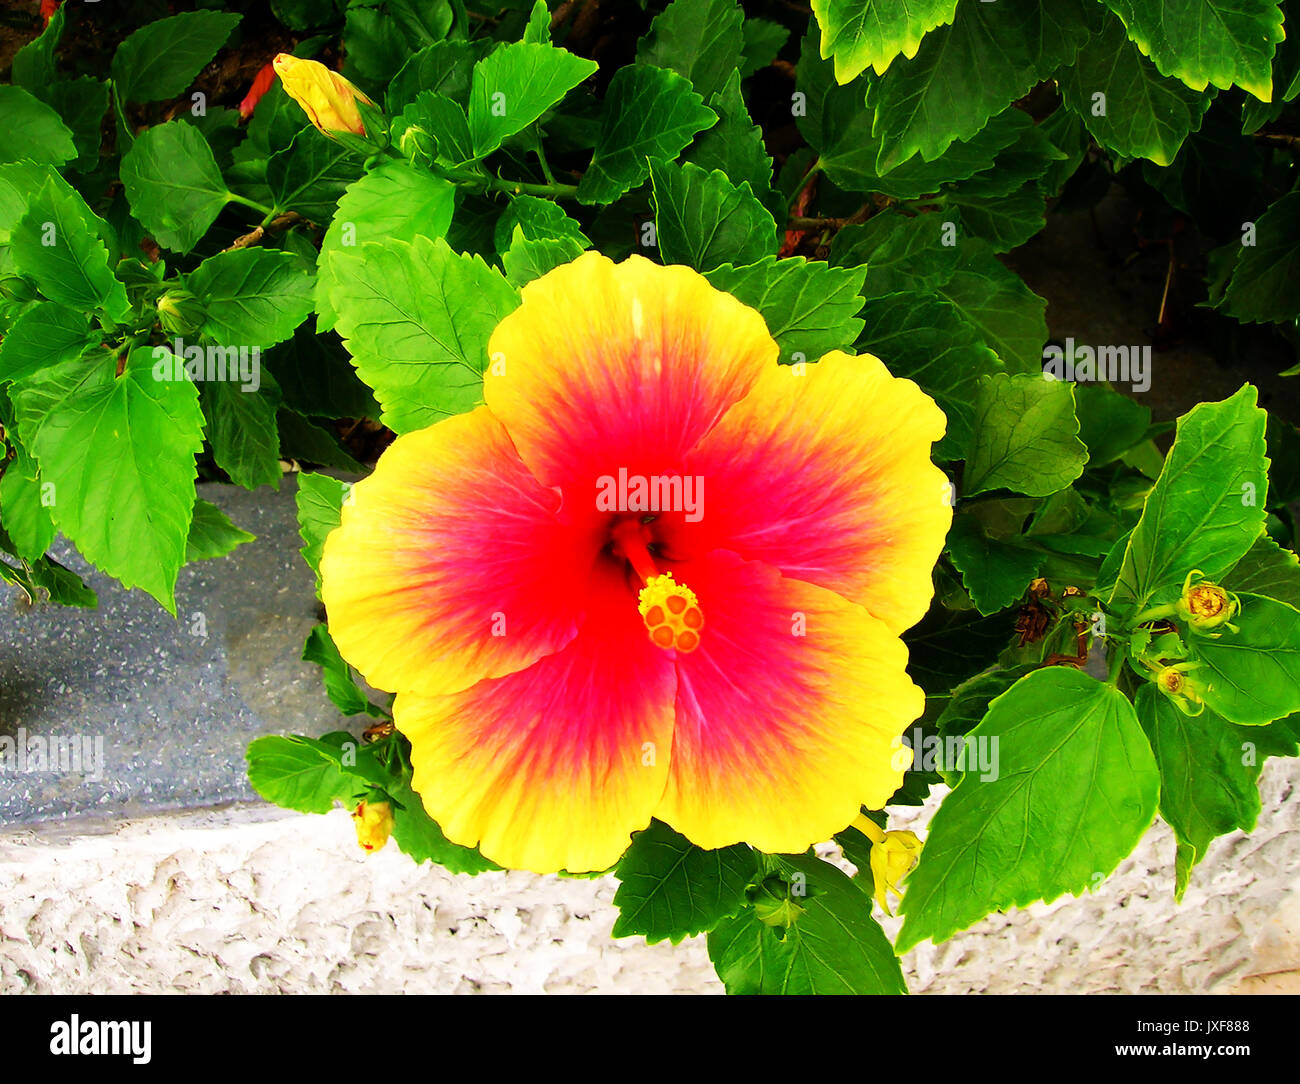 The colorful flower in Thailand - Stock Image